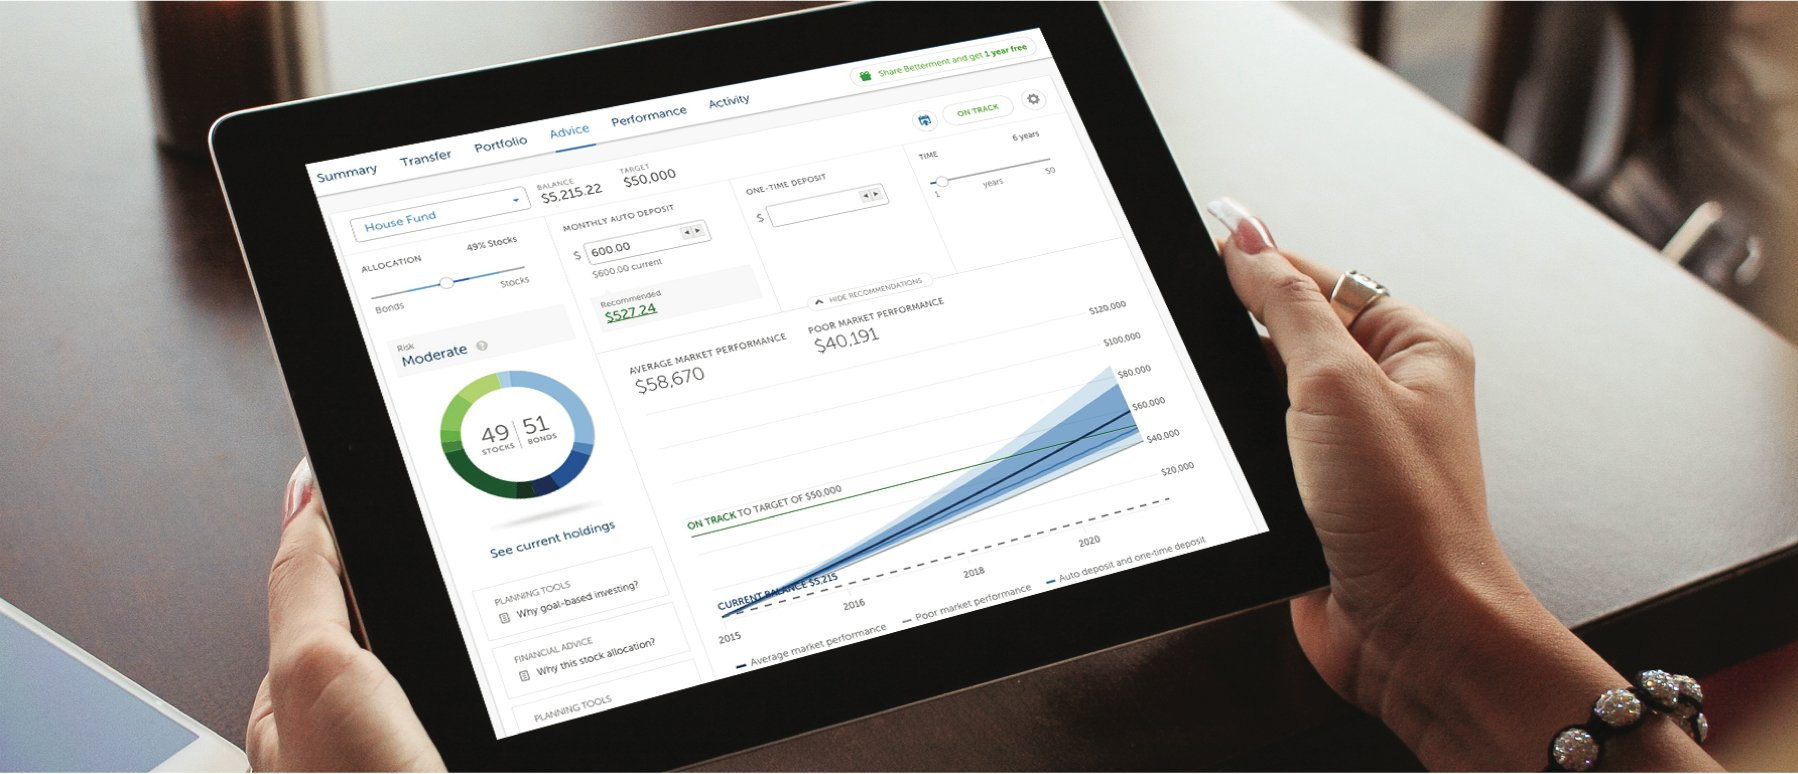 Wealth management made simple.